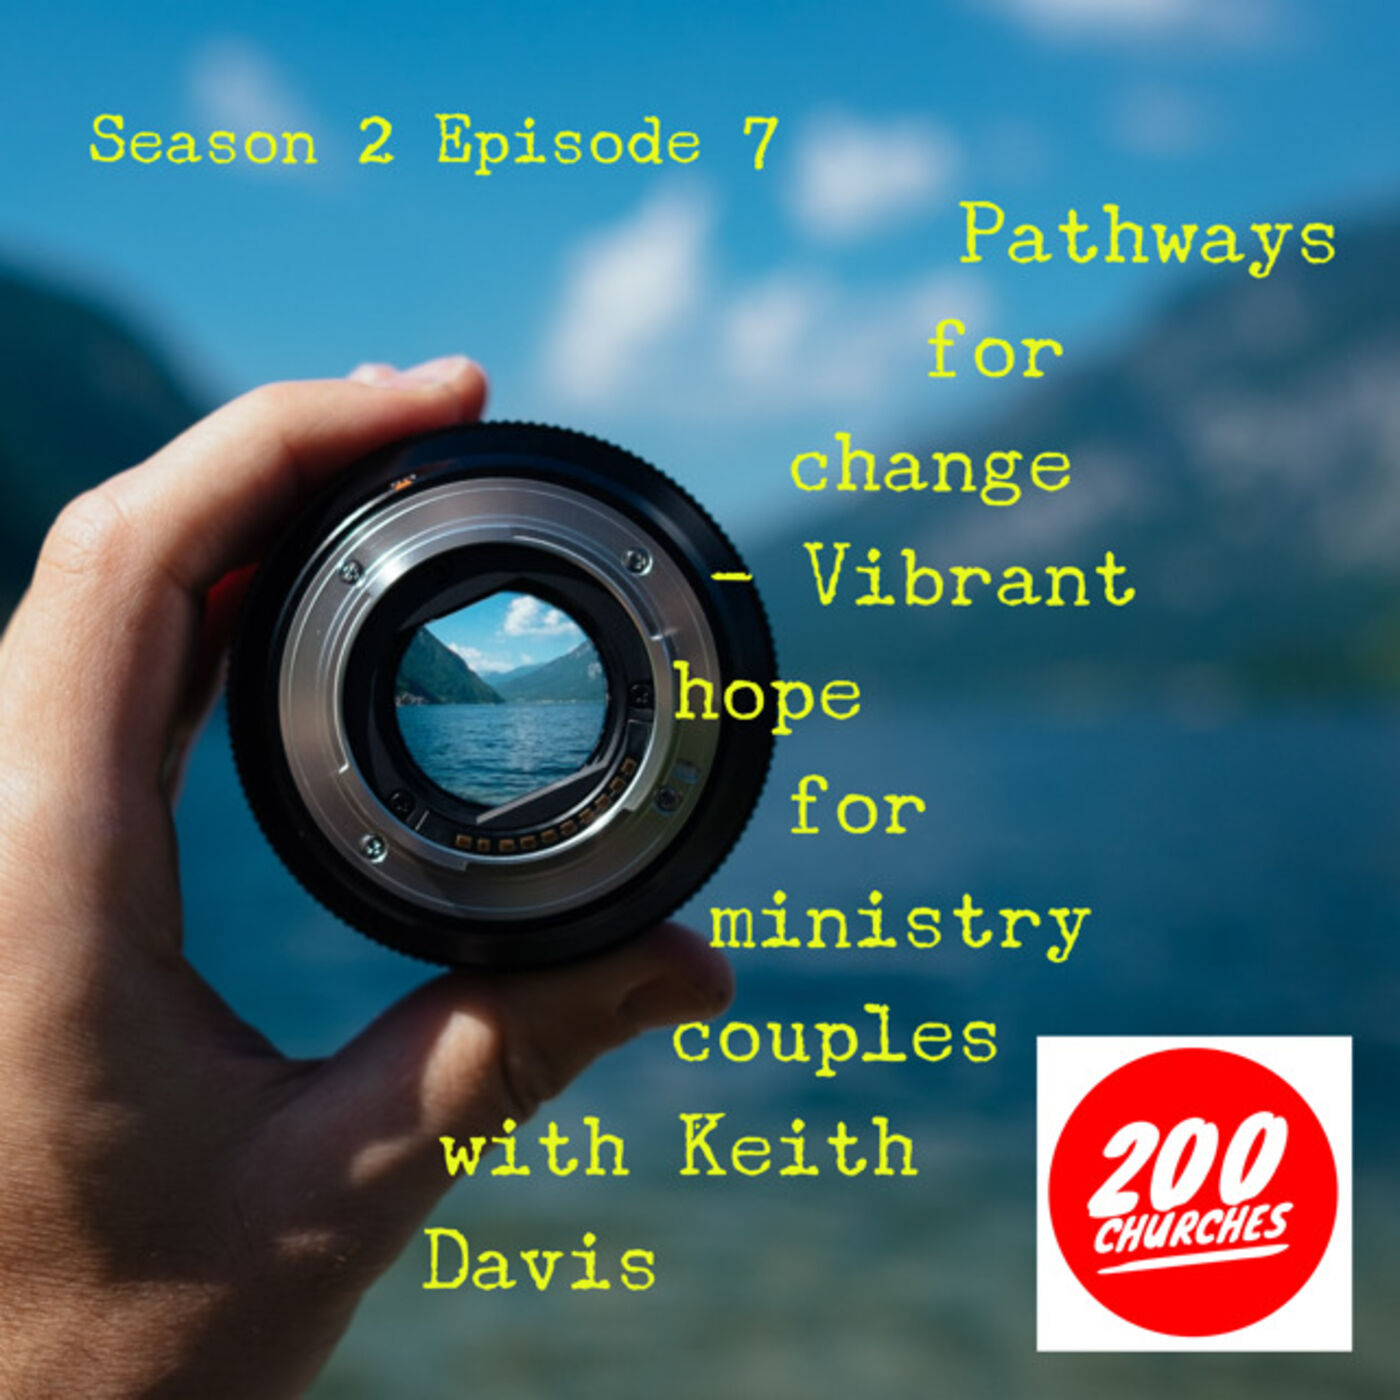 Season 2 Episode 07 - Parallel Episode - Pathways for Change that lead to Vibrant Hope with Keith Davis